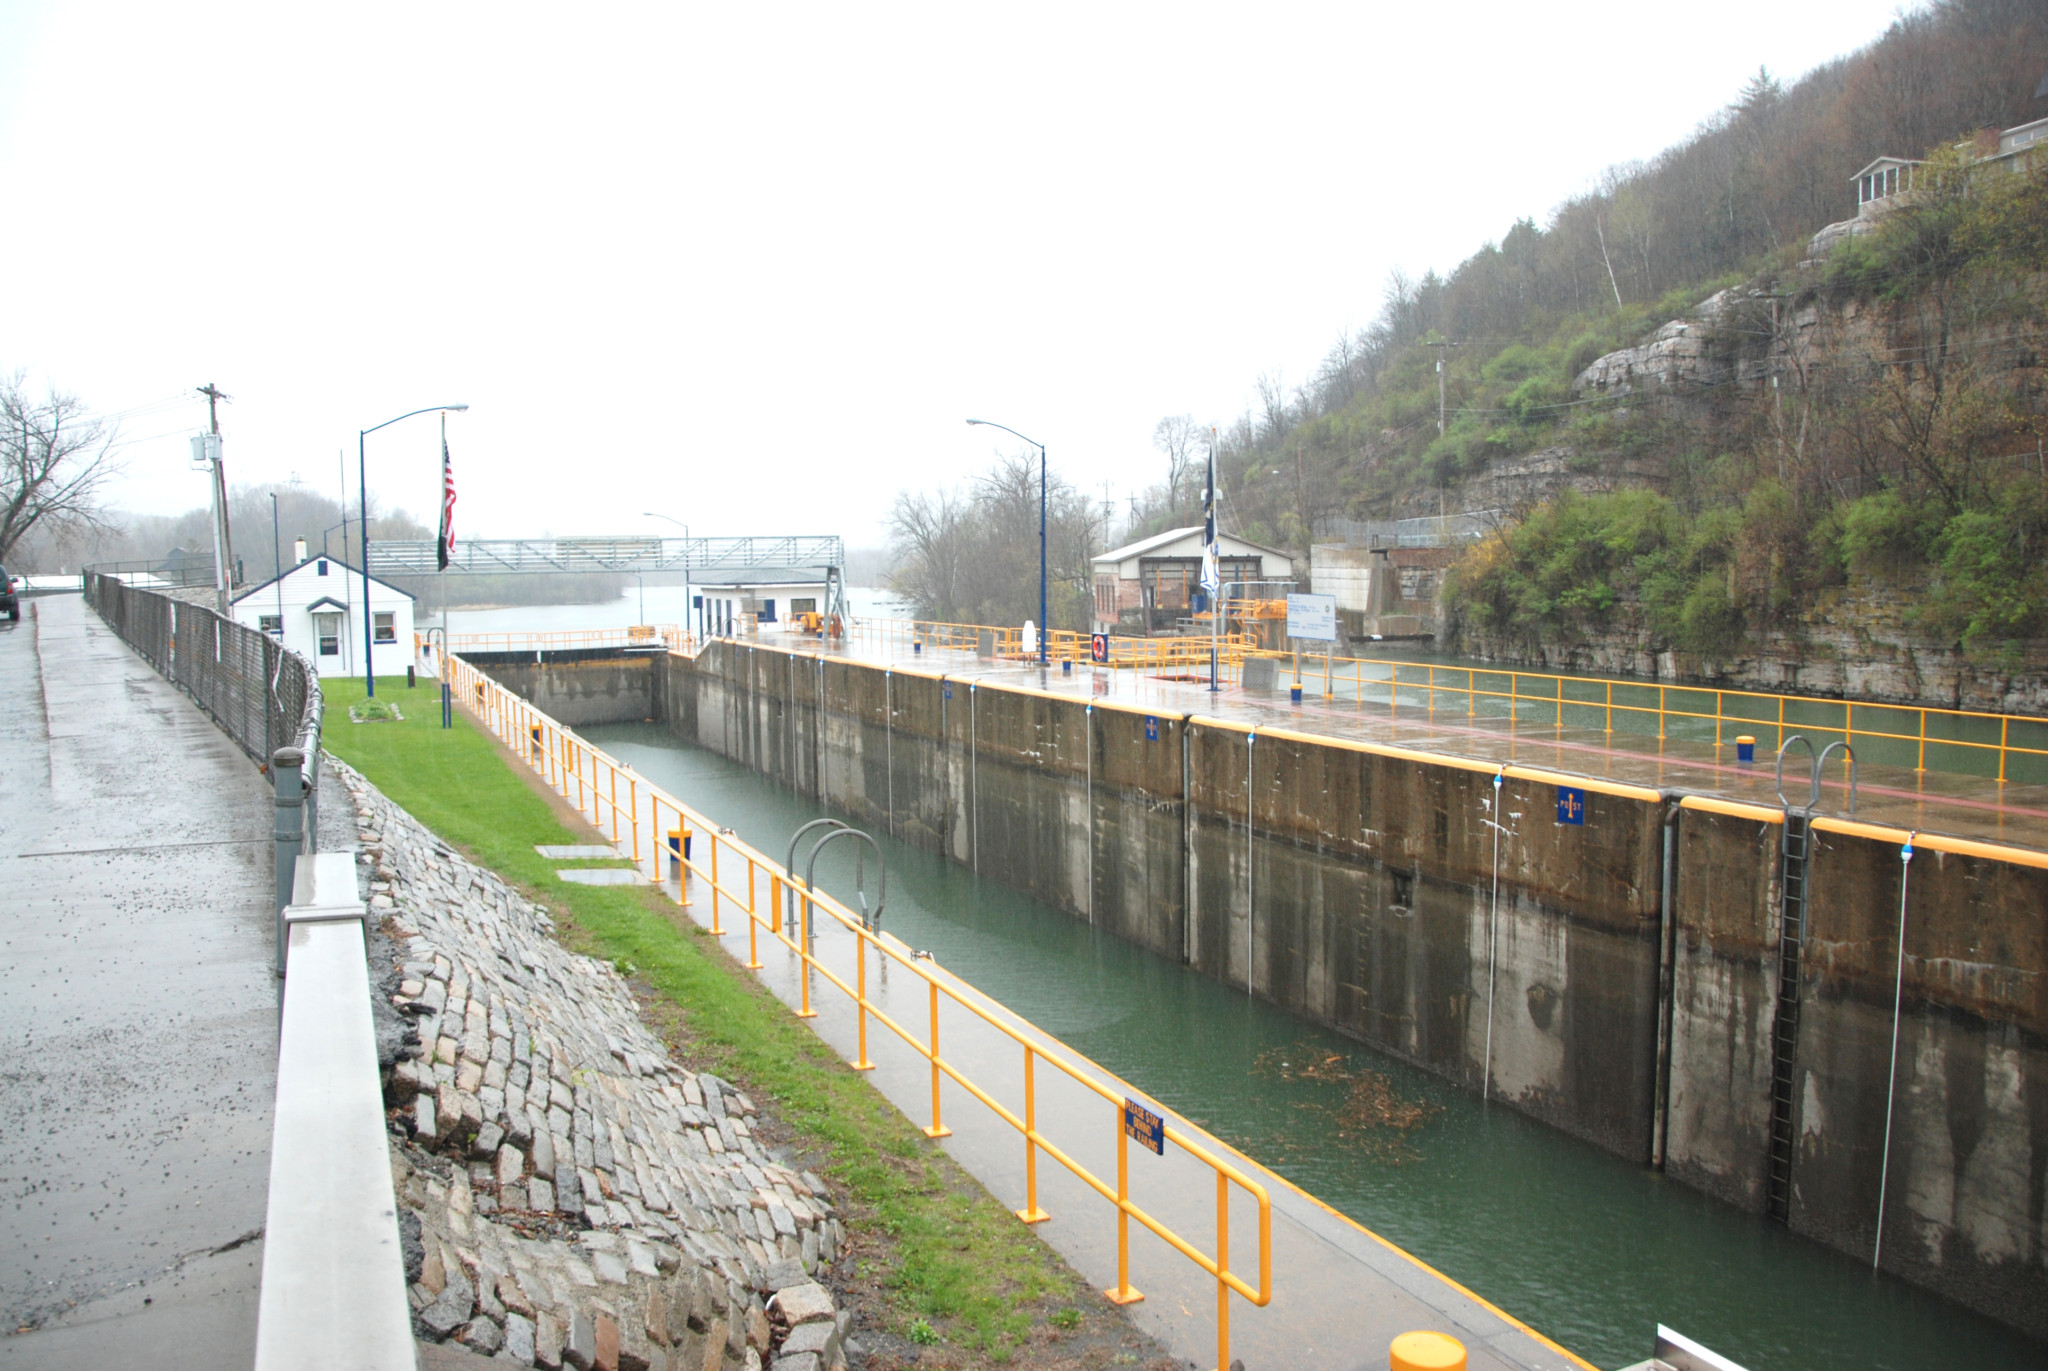 Canal to open – but not here, Lock 12 shut down till August